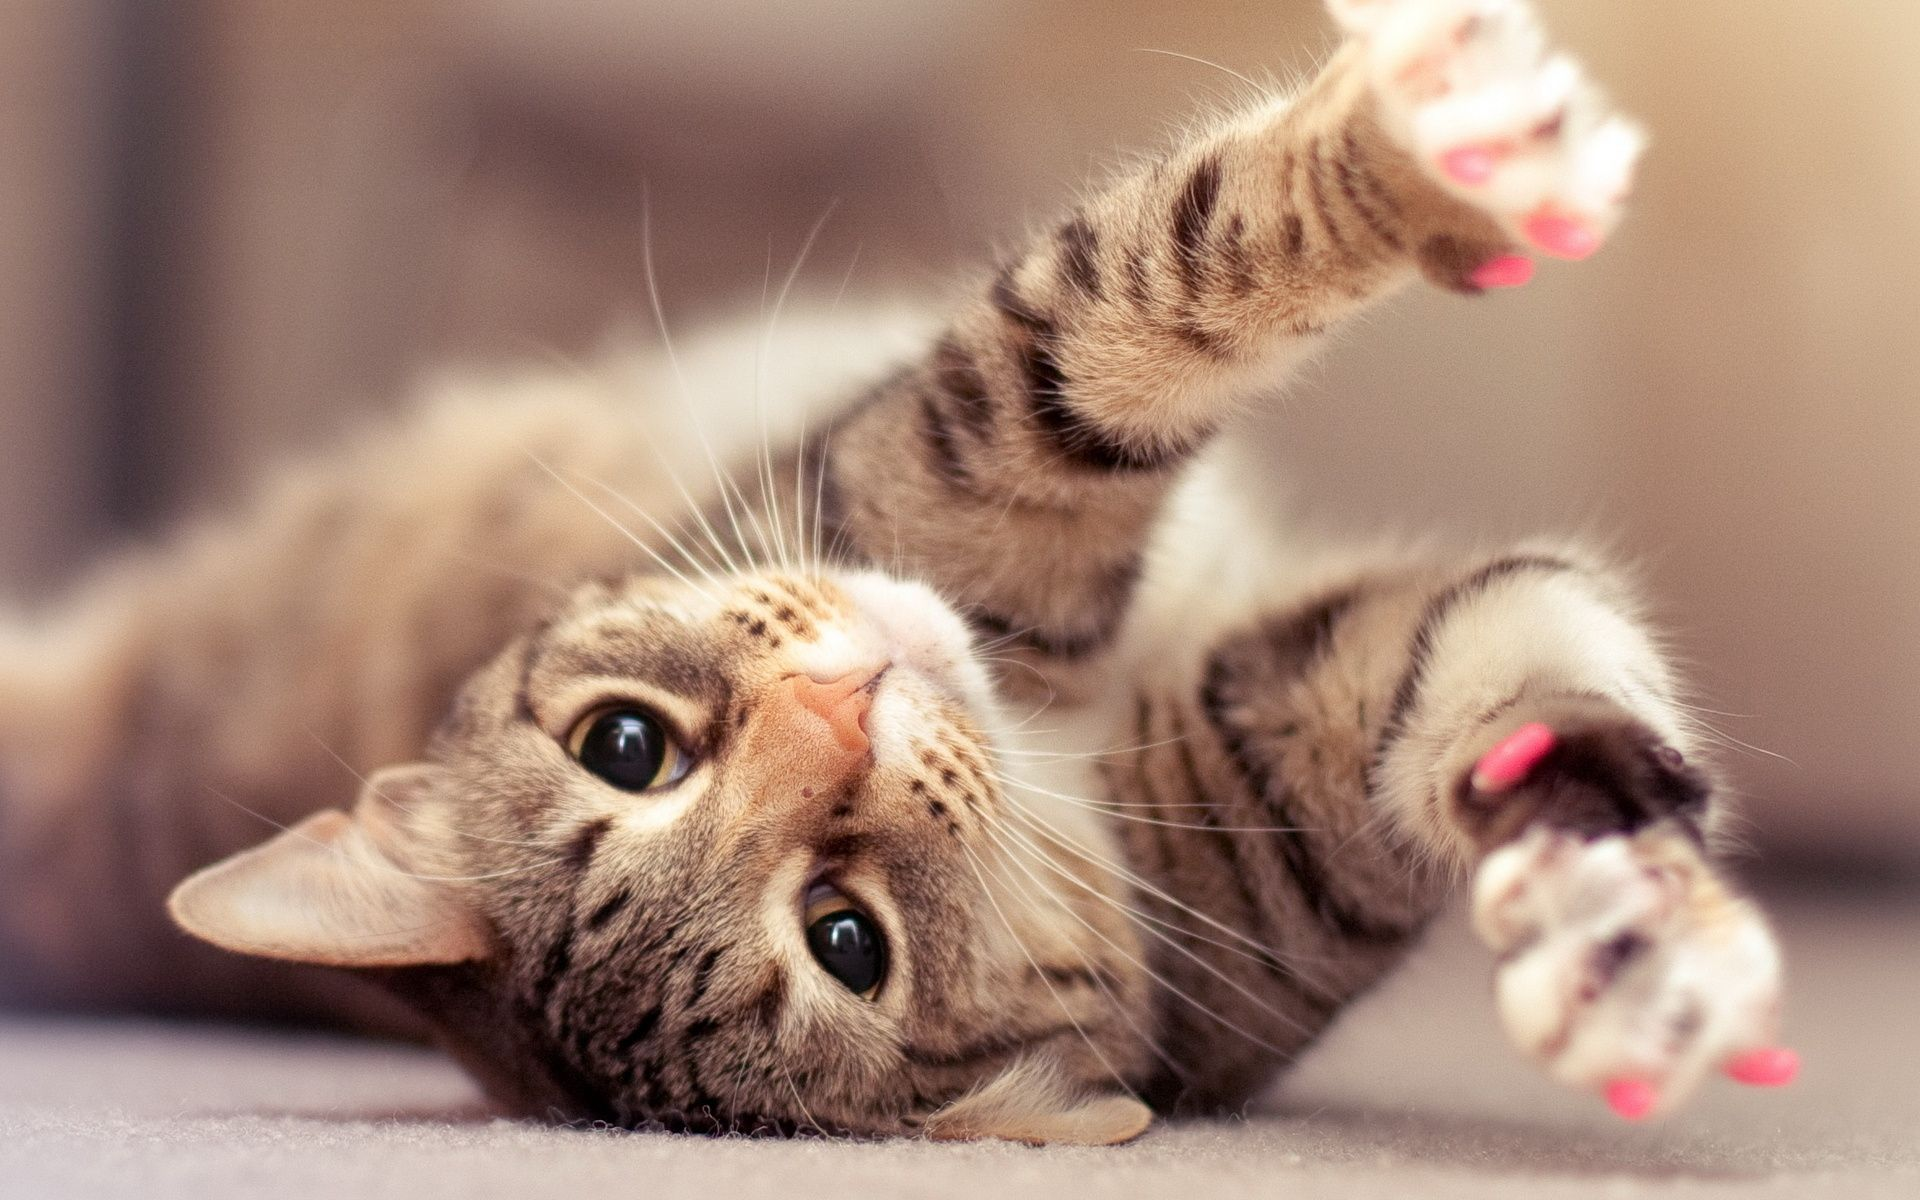 Full Hd Cute Cat Wallpaper Wallpapers Pinterest Gatos